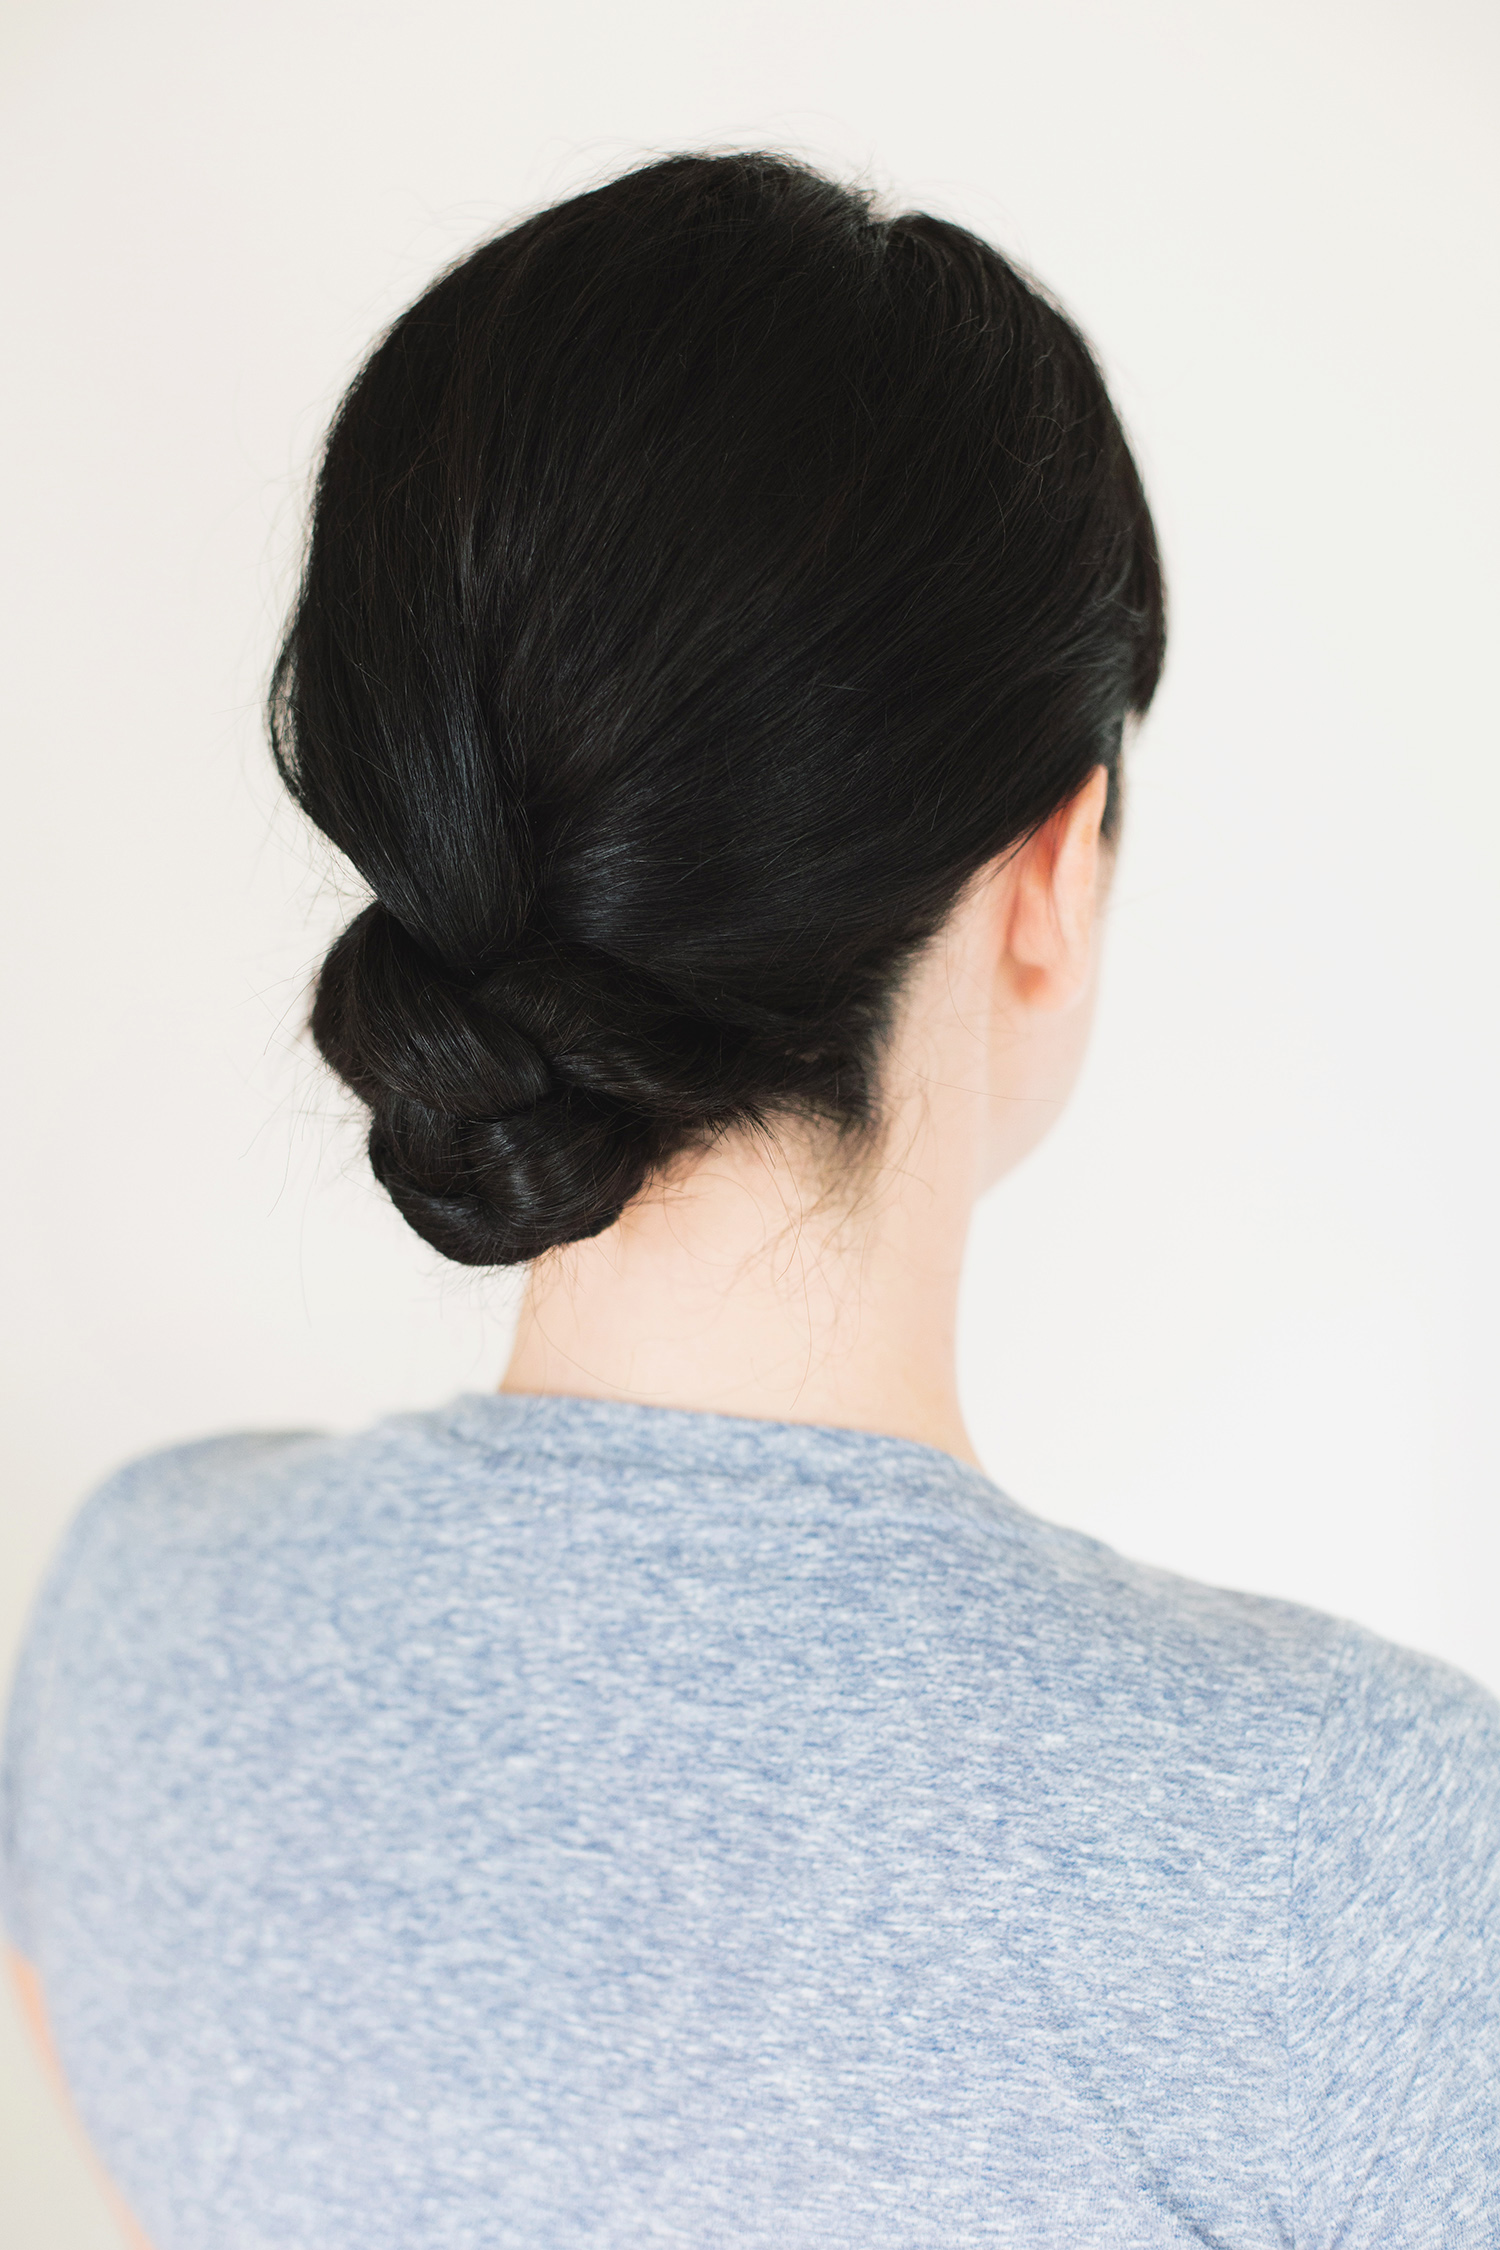 Diy 5 minute braided bun